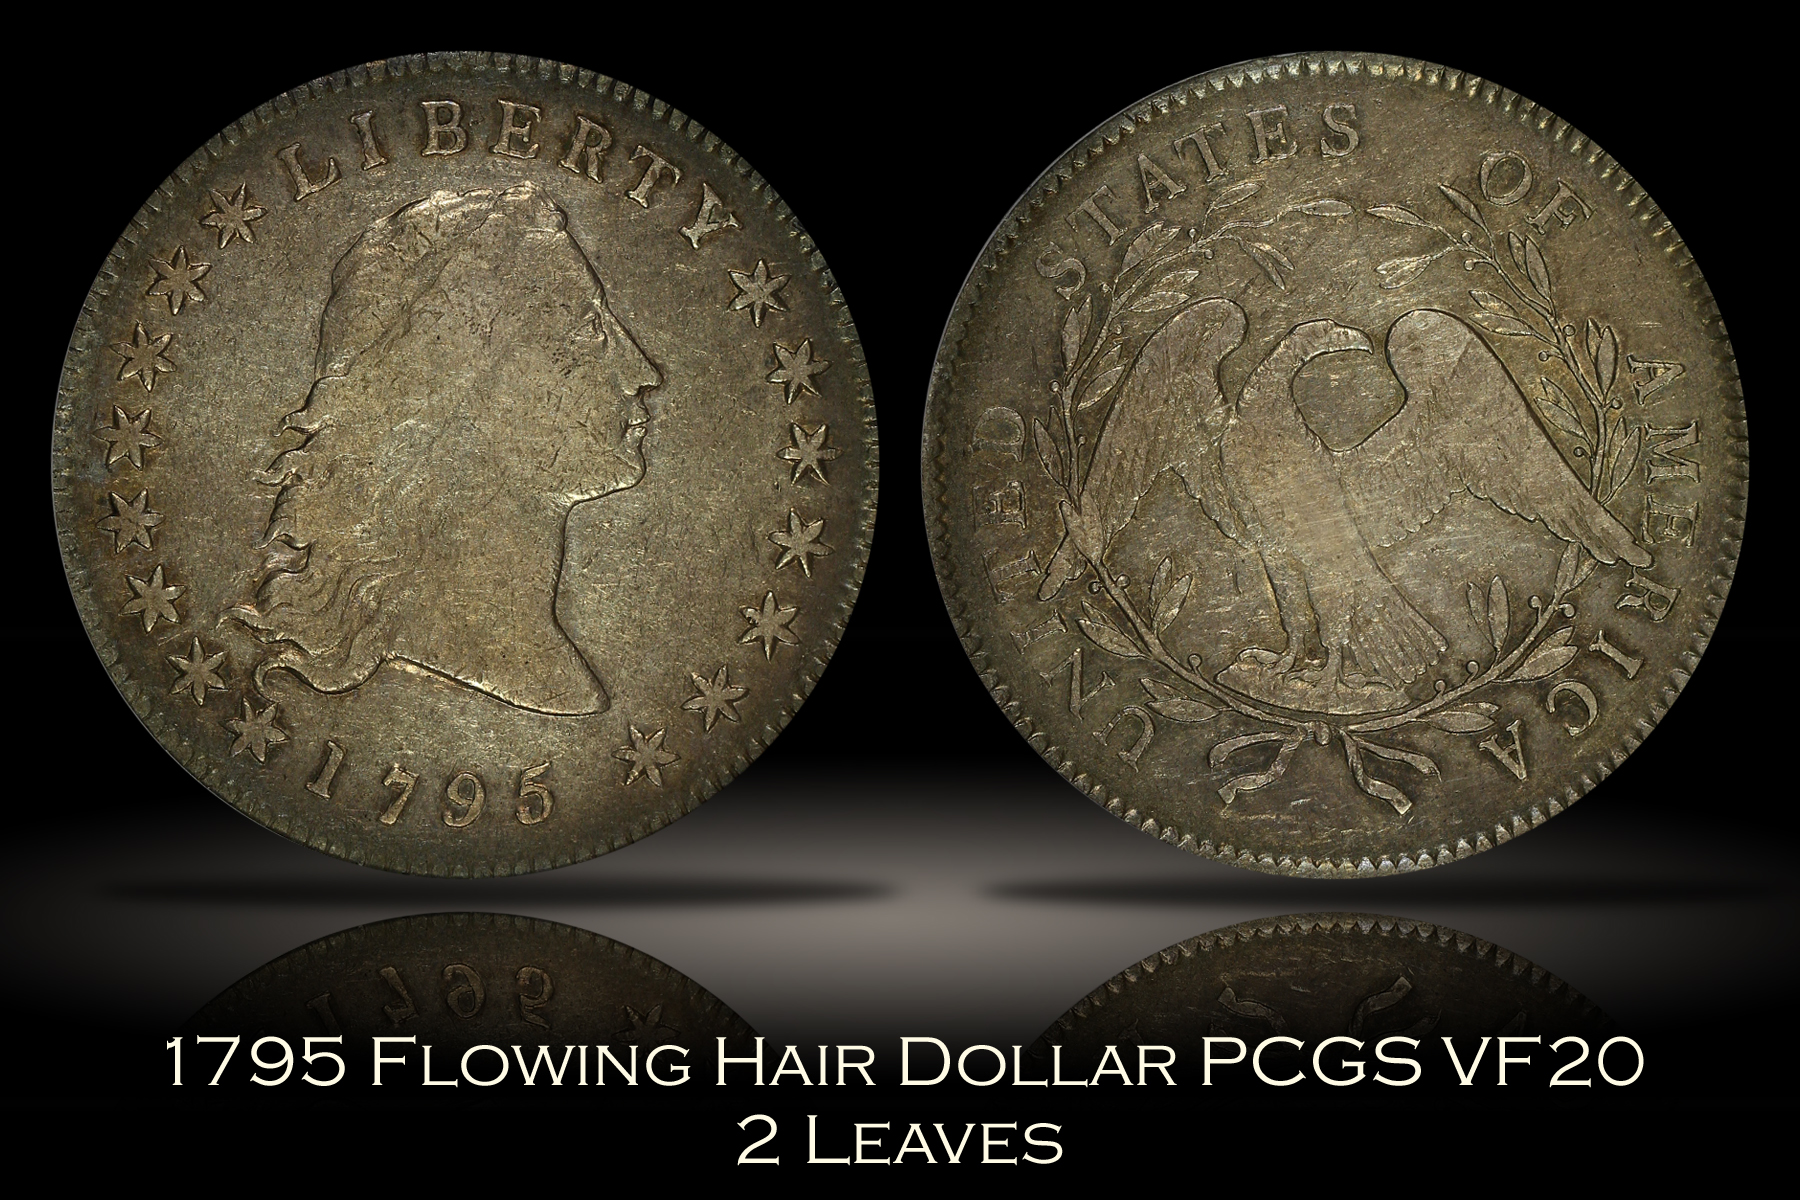 1795 Flowing Hair Dollar 2 Leaves PCGS VF20